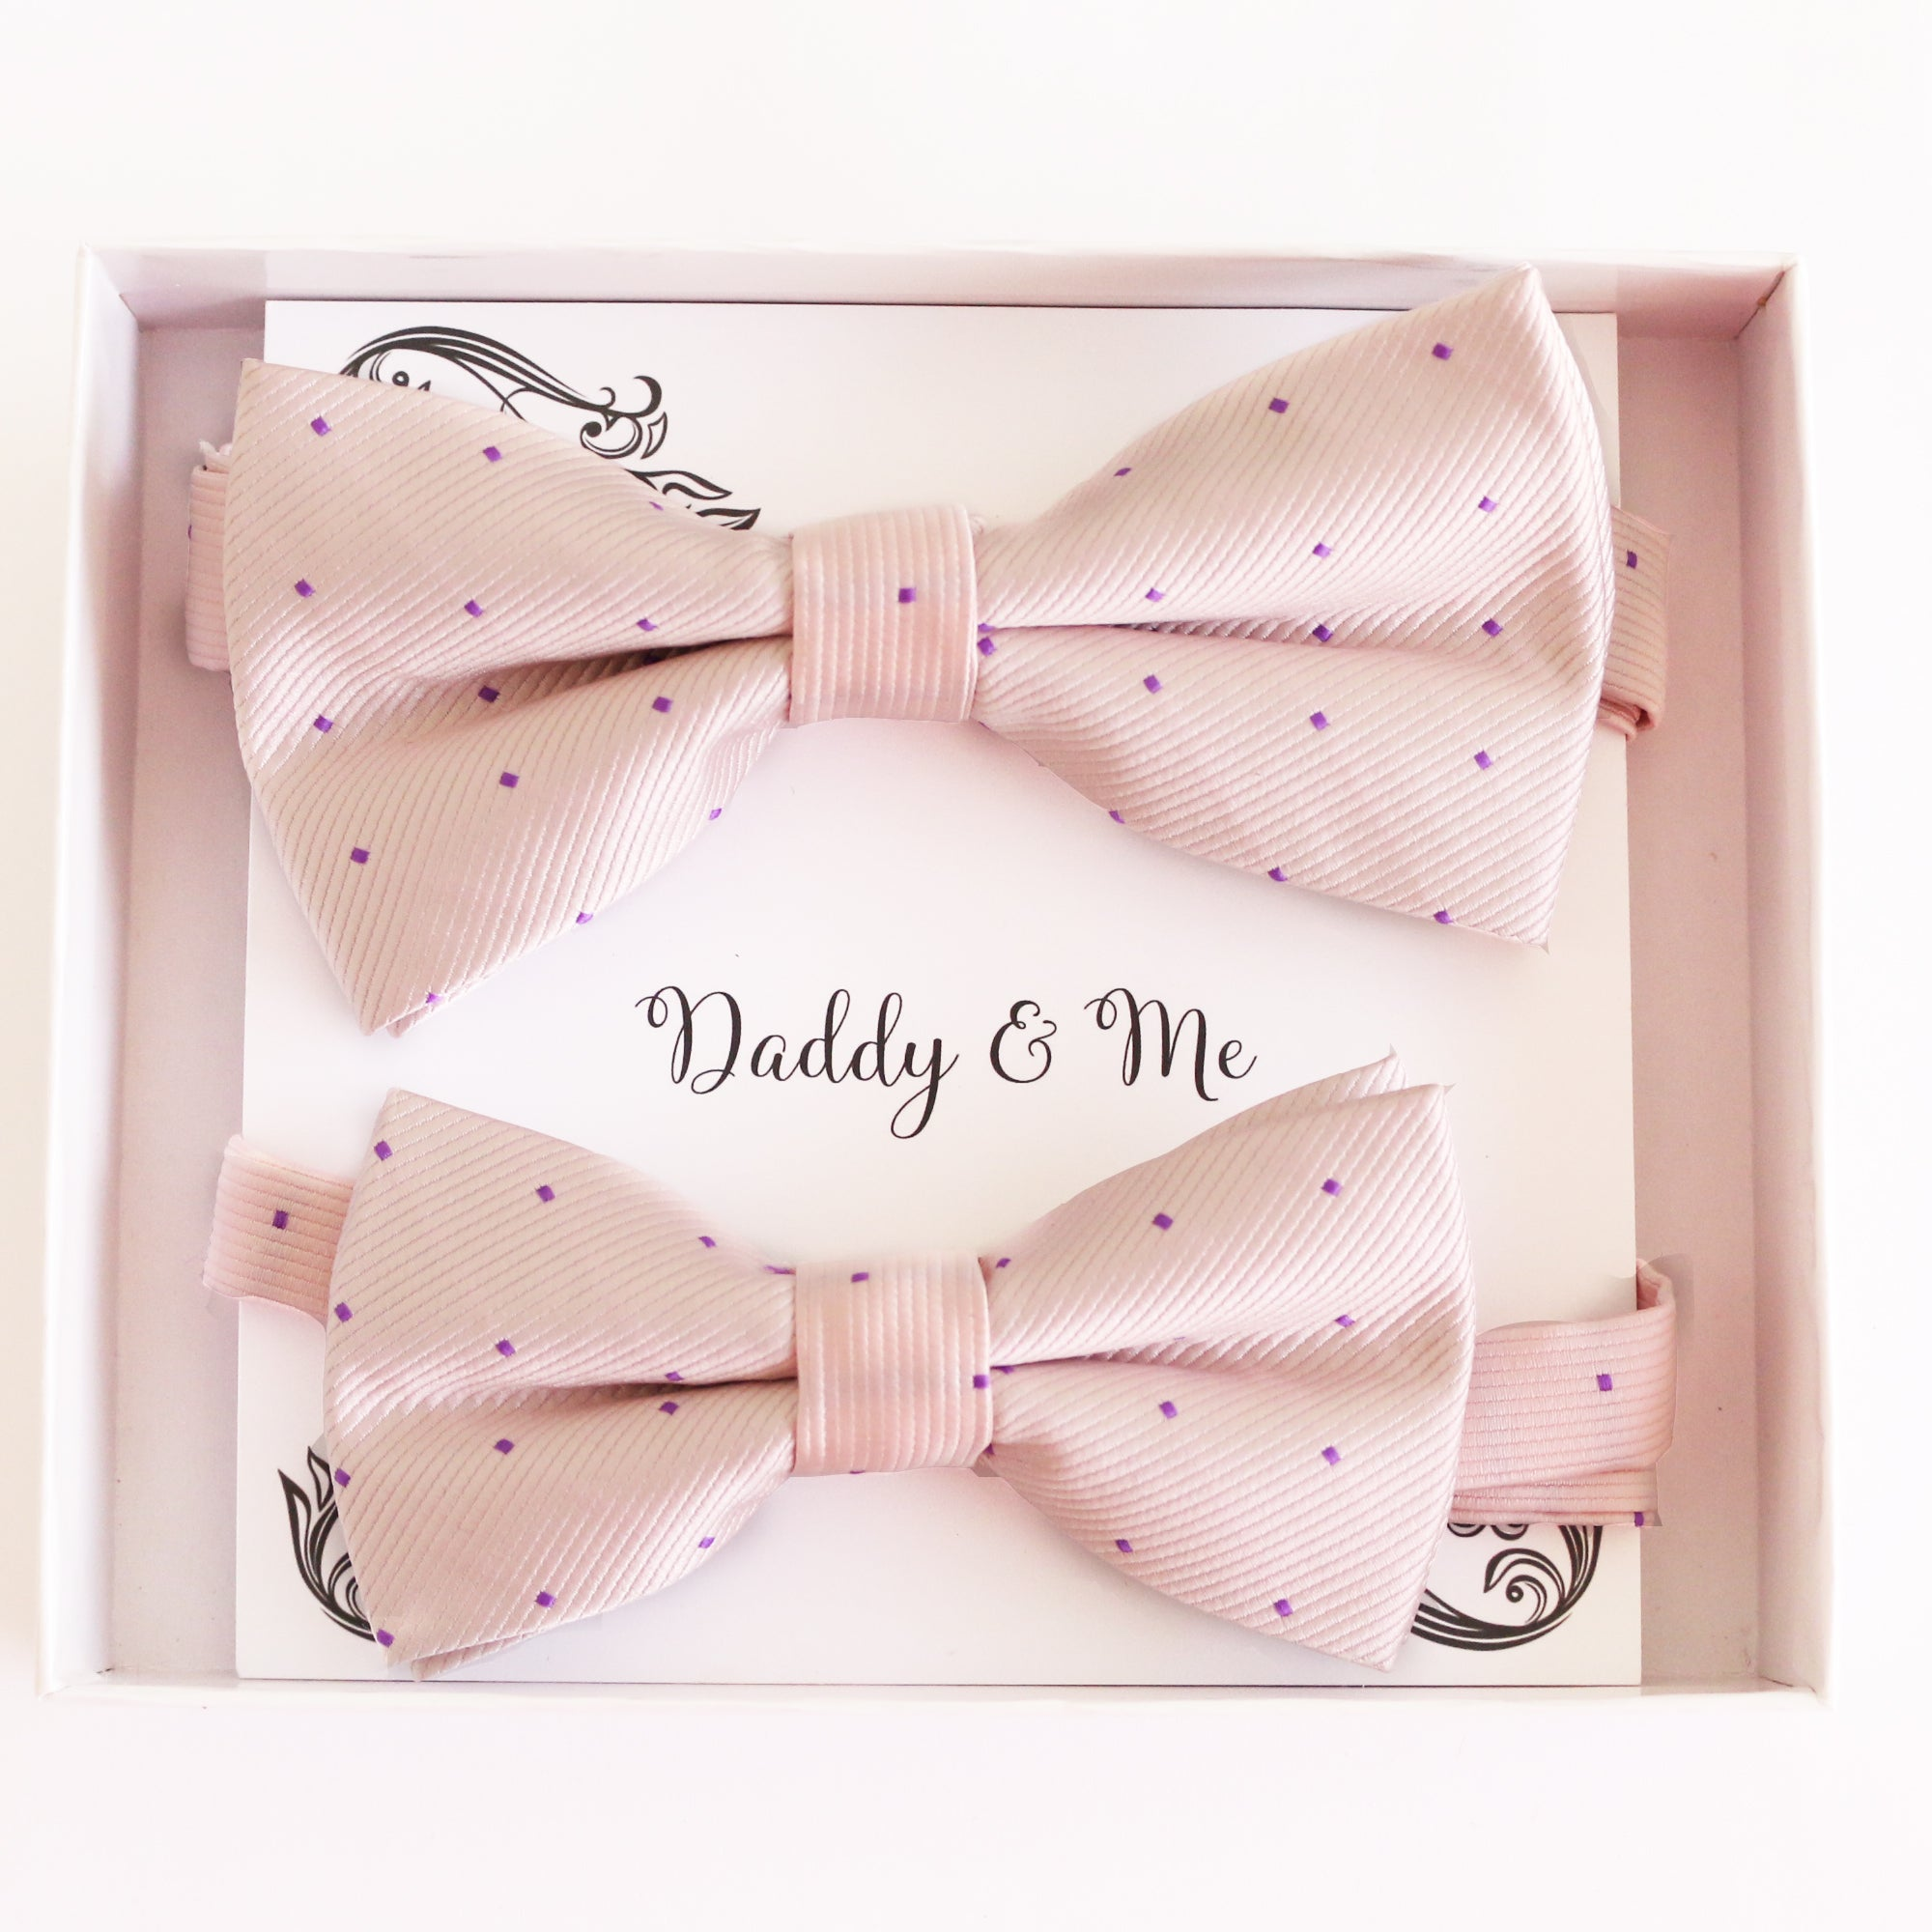 Soft pink Bow tie set Kids Adult bow tie Daddy me Father son match, kids bow Adjustable pre tied, High quality